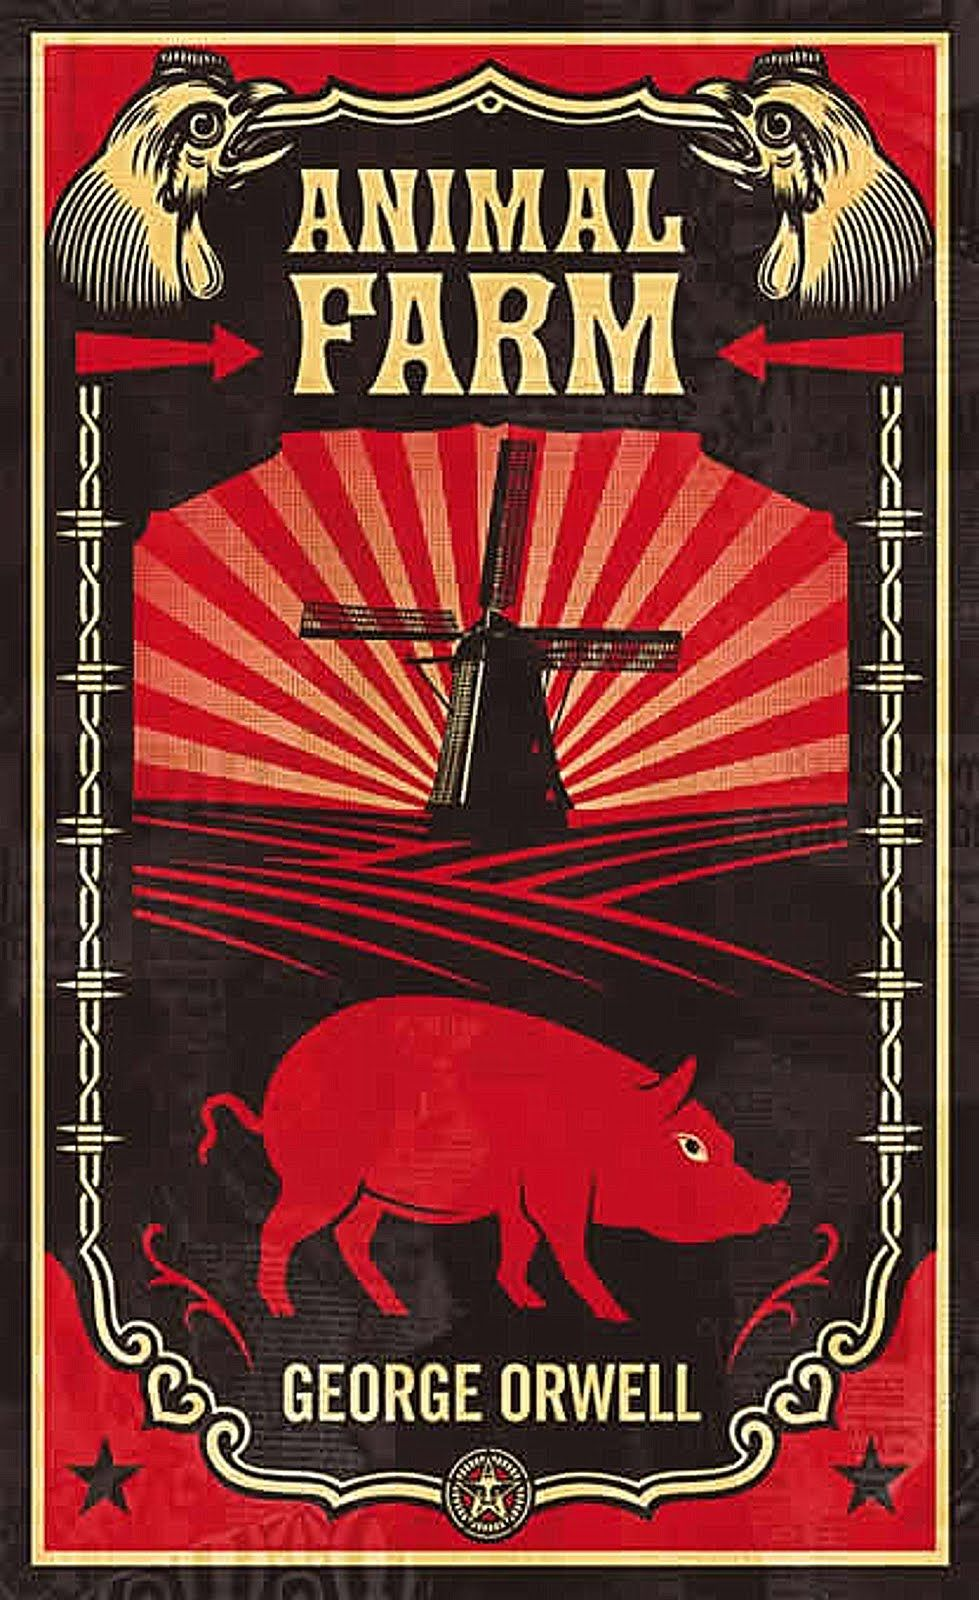 Shepard Farey Animal farm book, Animal farm